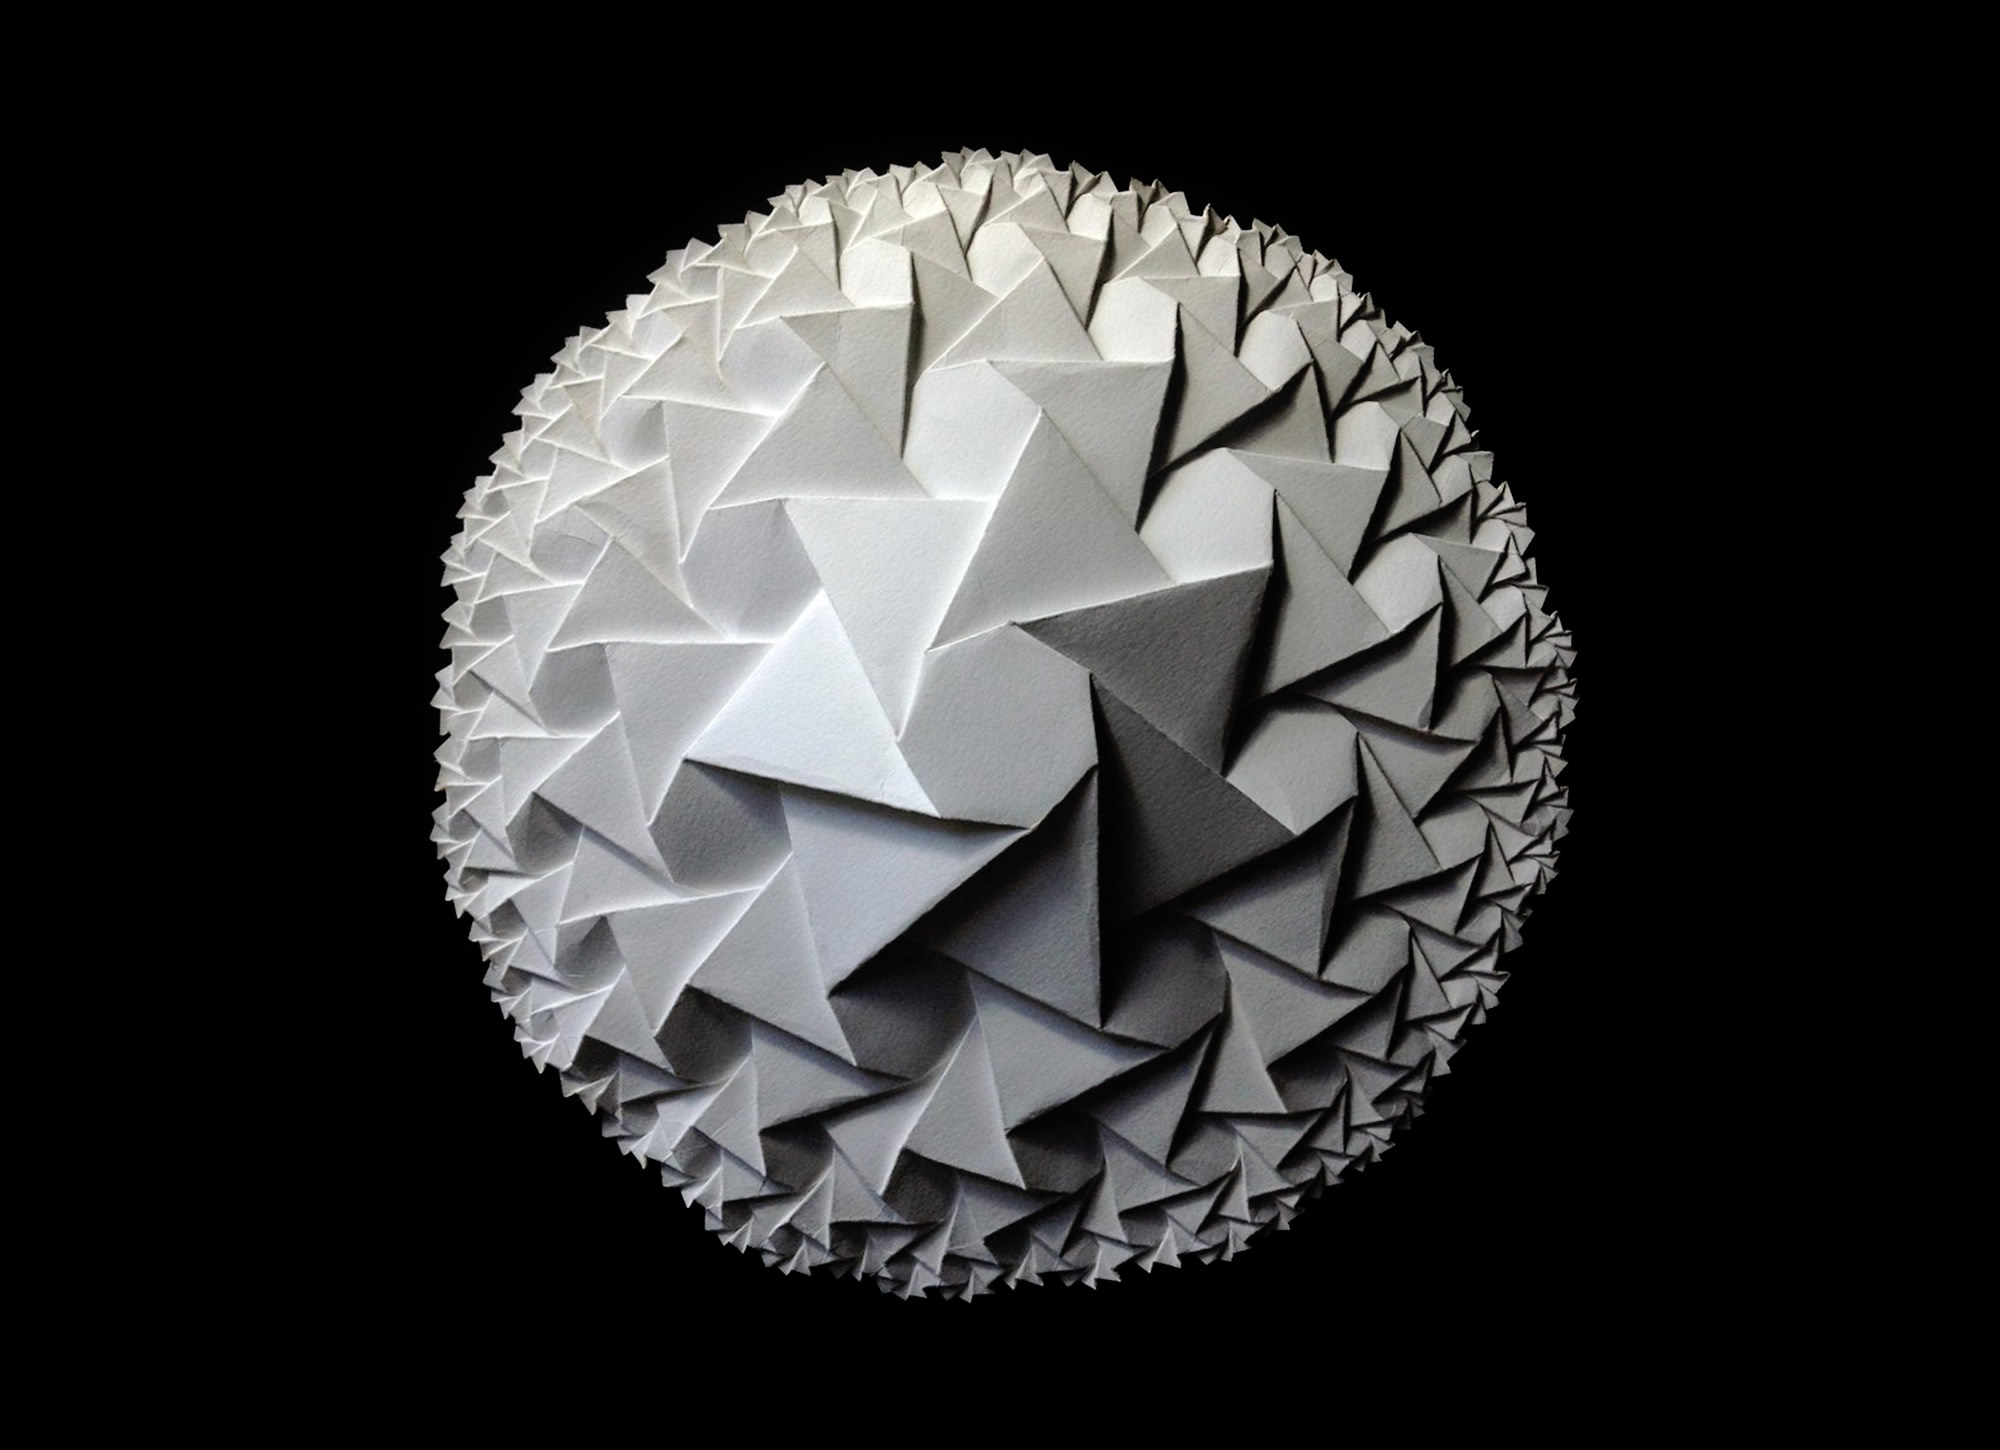 Origami and Mathematics Go Hand and Hand: The Paper Sculptures of Robby Kraft